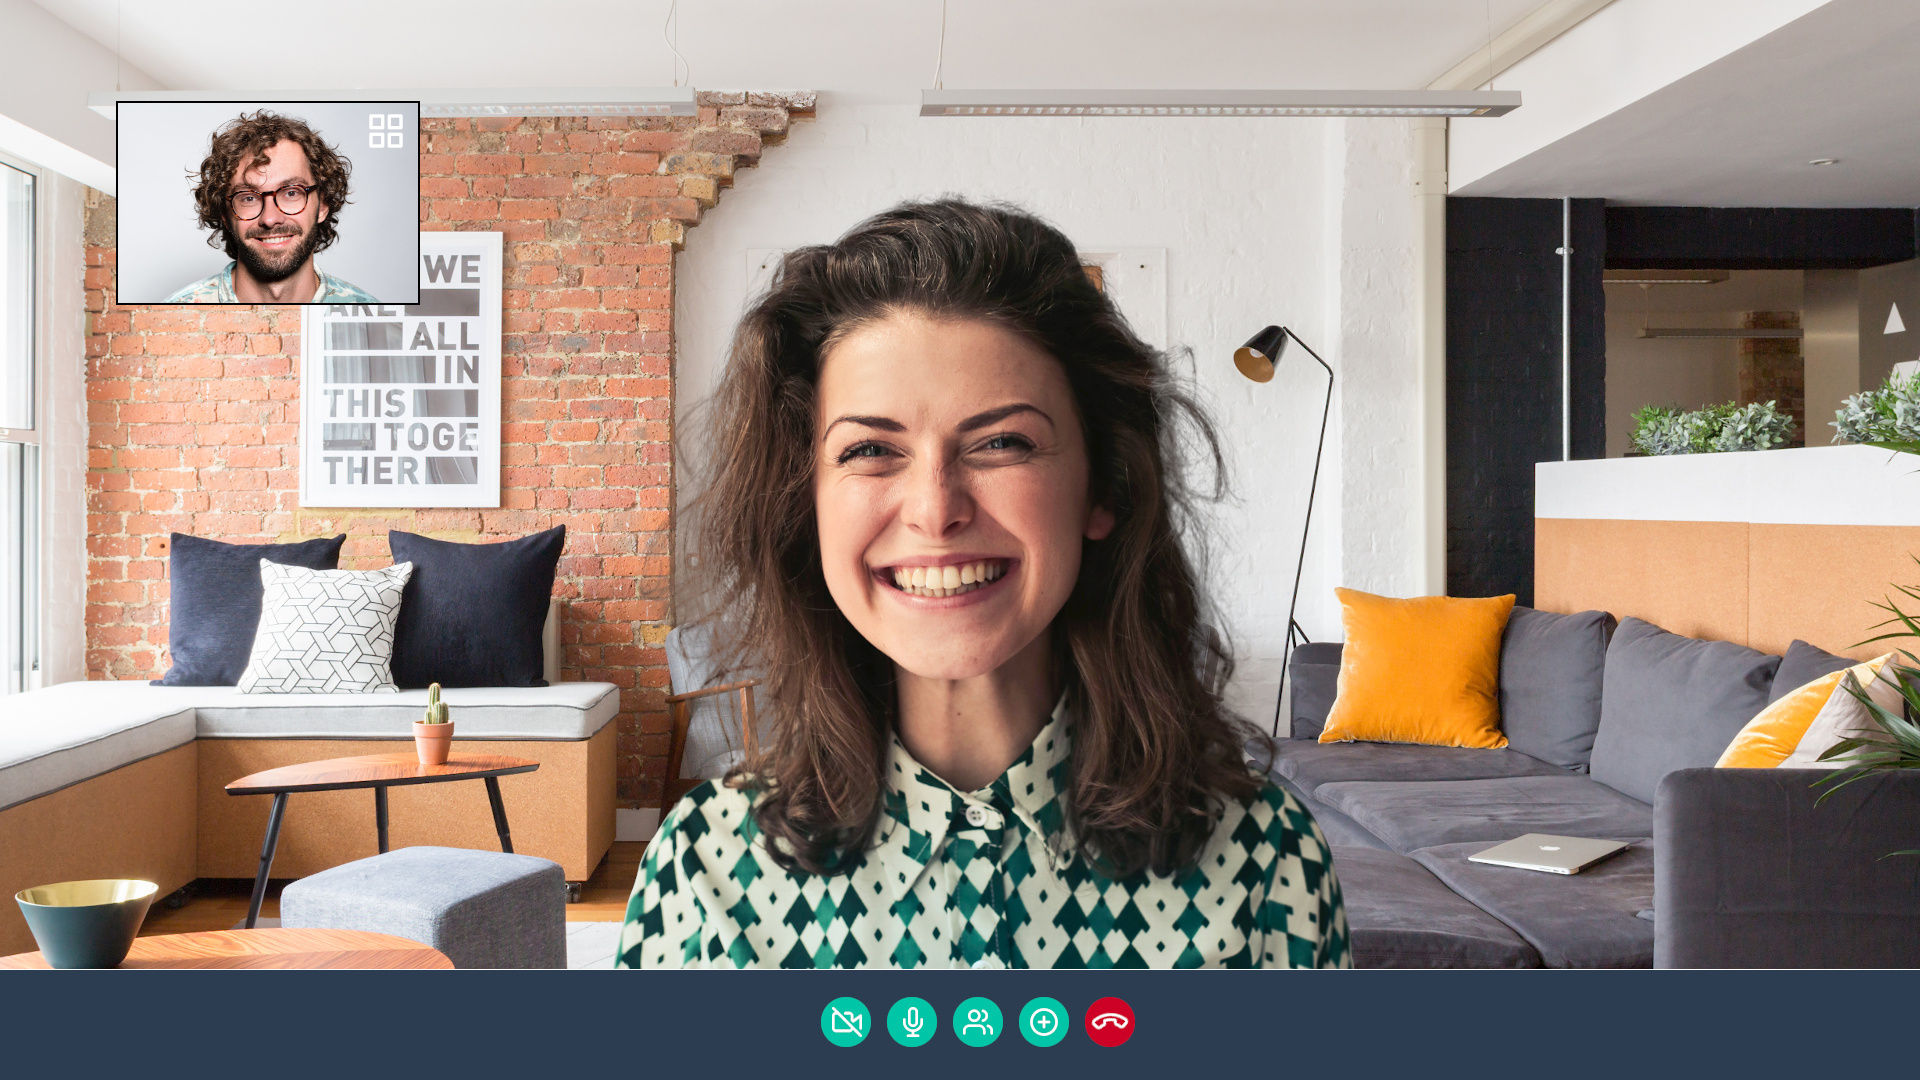 Zoom Backgrounds For Video Meetings Hello Backgrounds